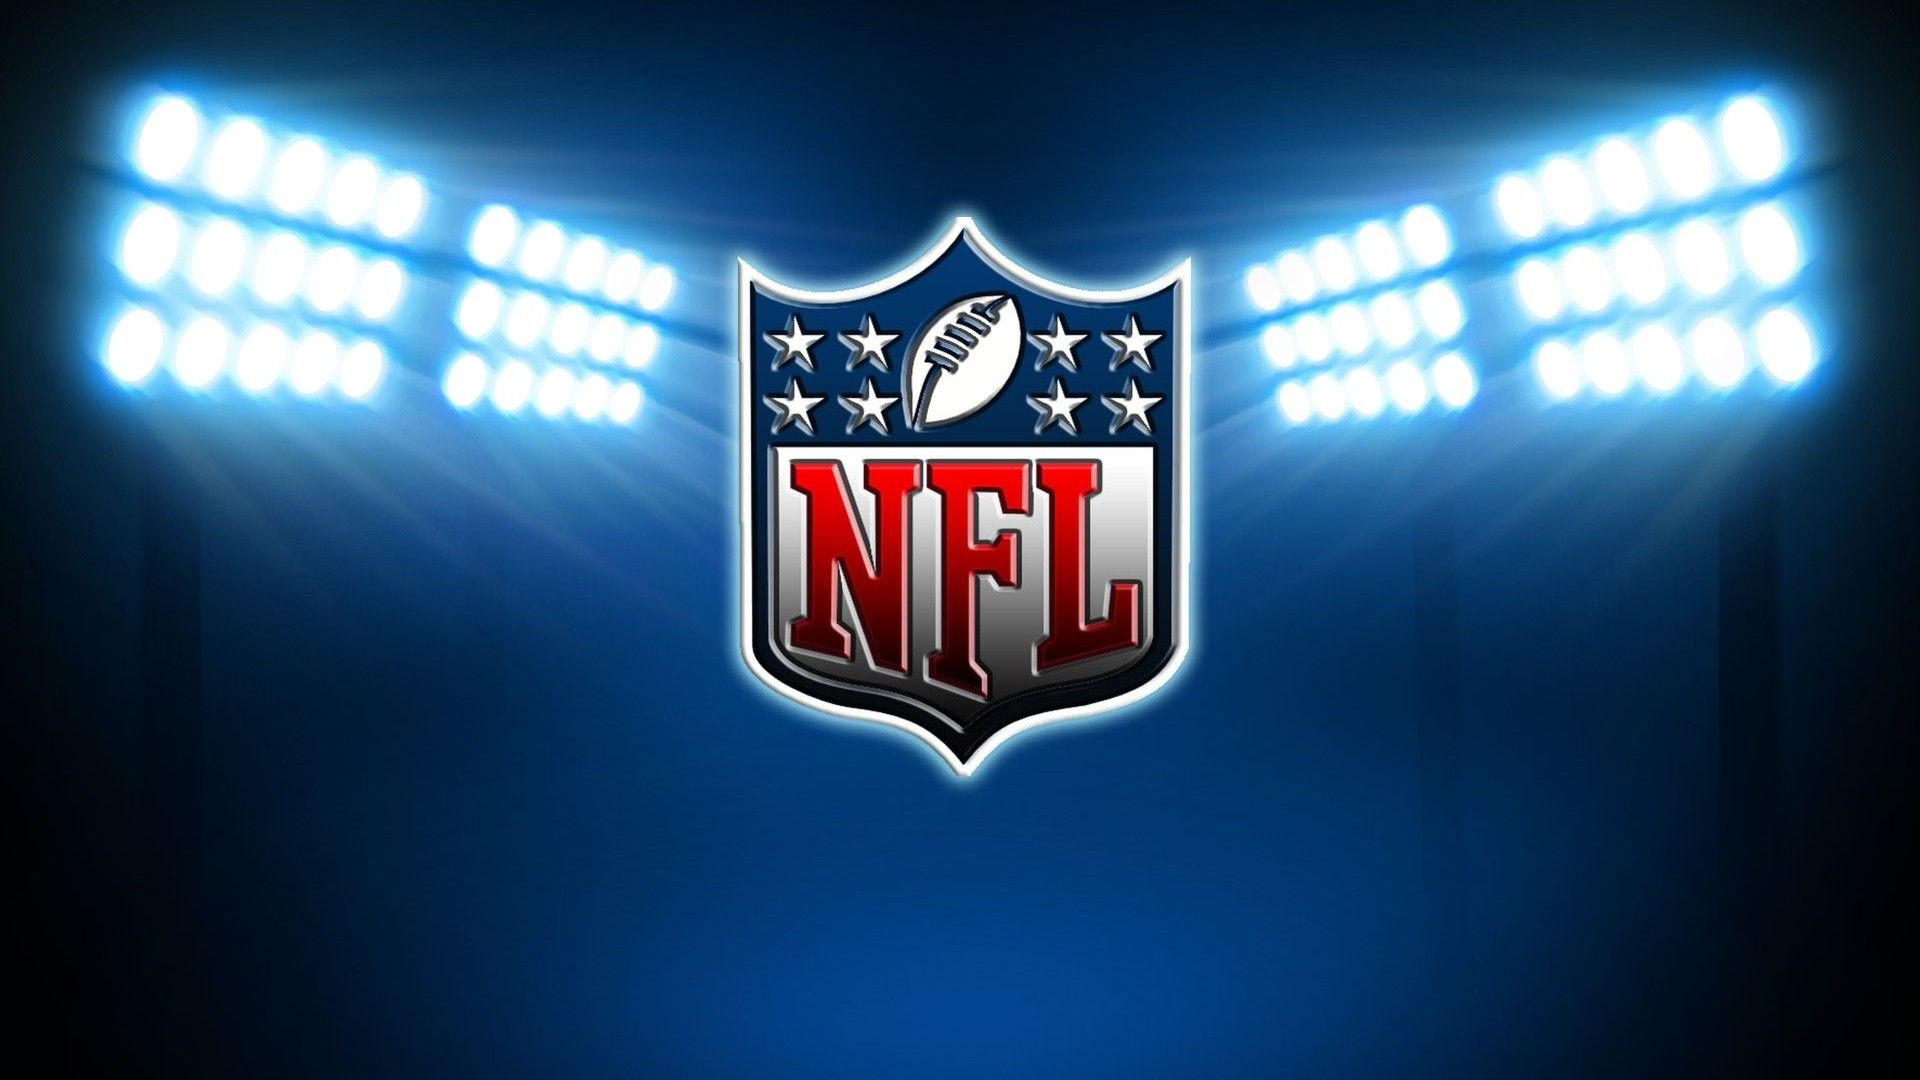 Backgrounds NFL HD Nfl season, Nfl logo, Nfl football